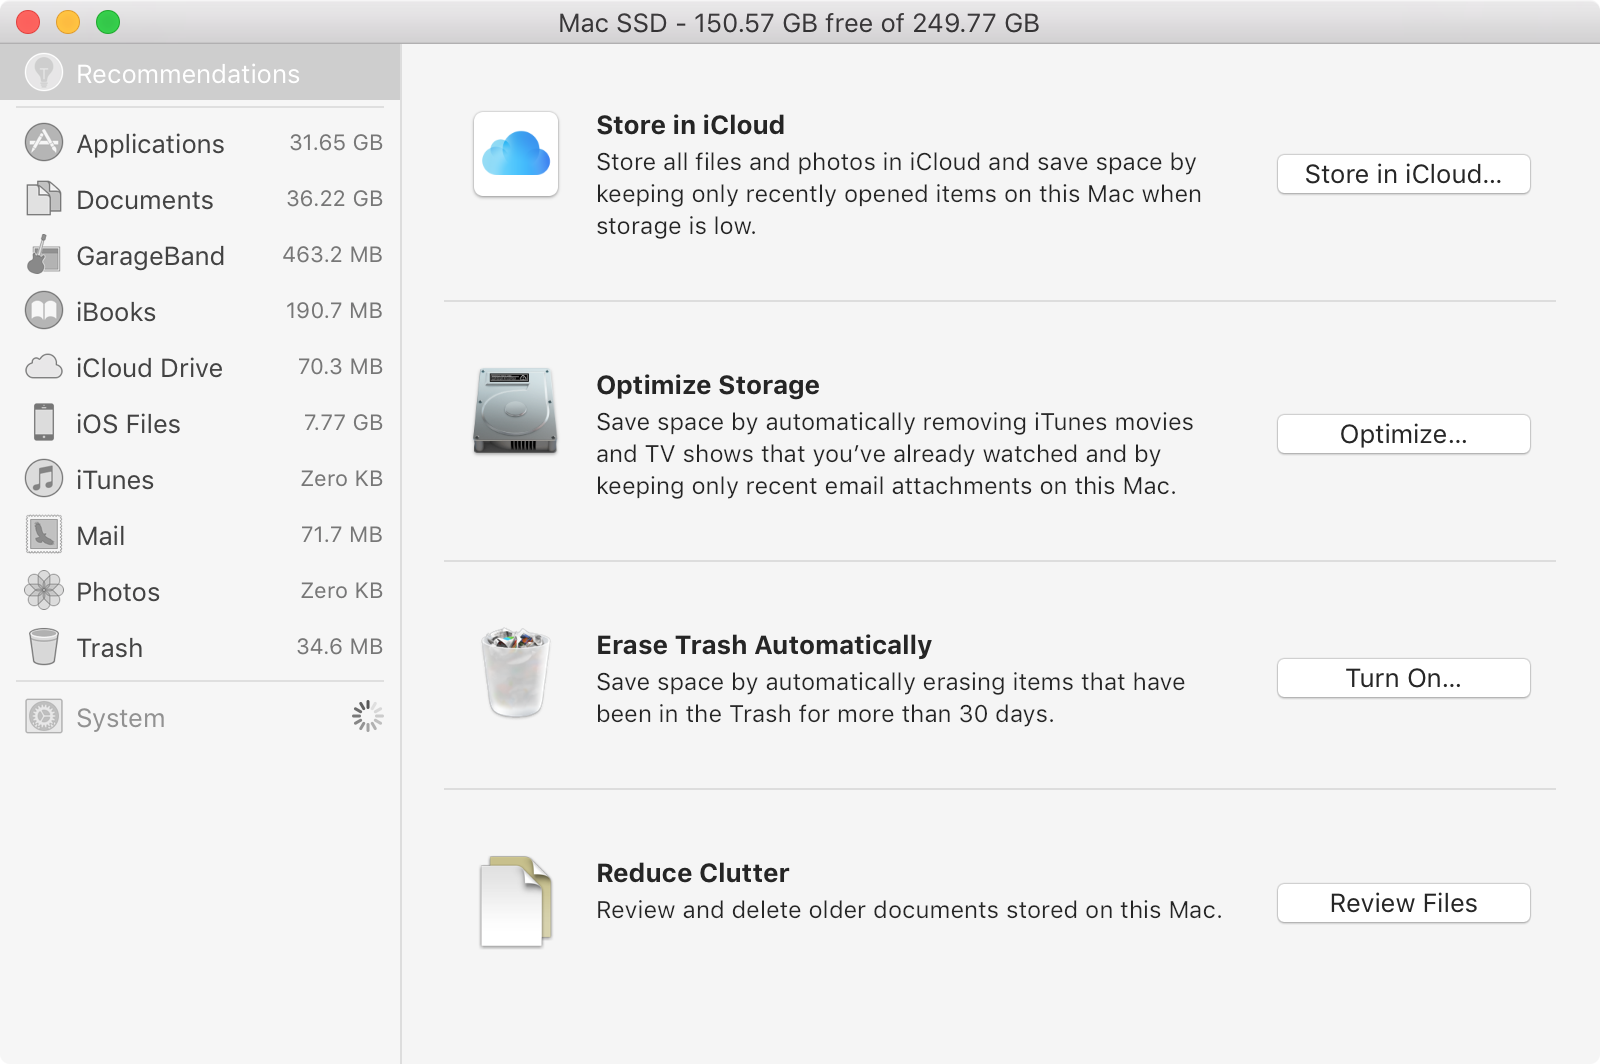 macOS Sierra Manage Storage System Information